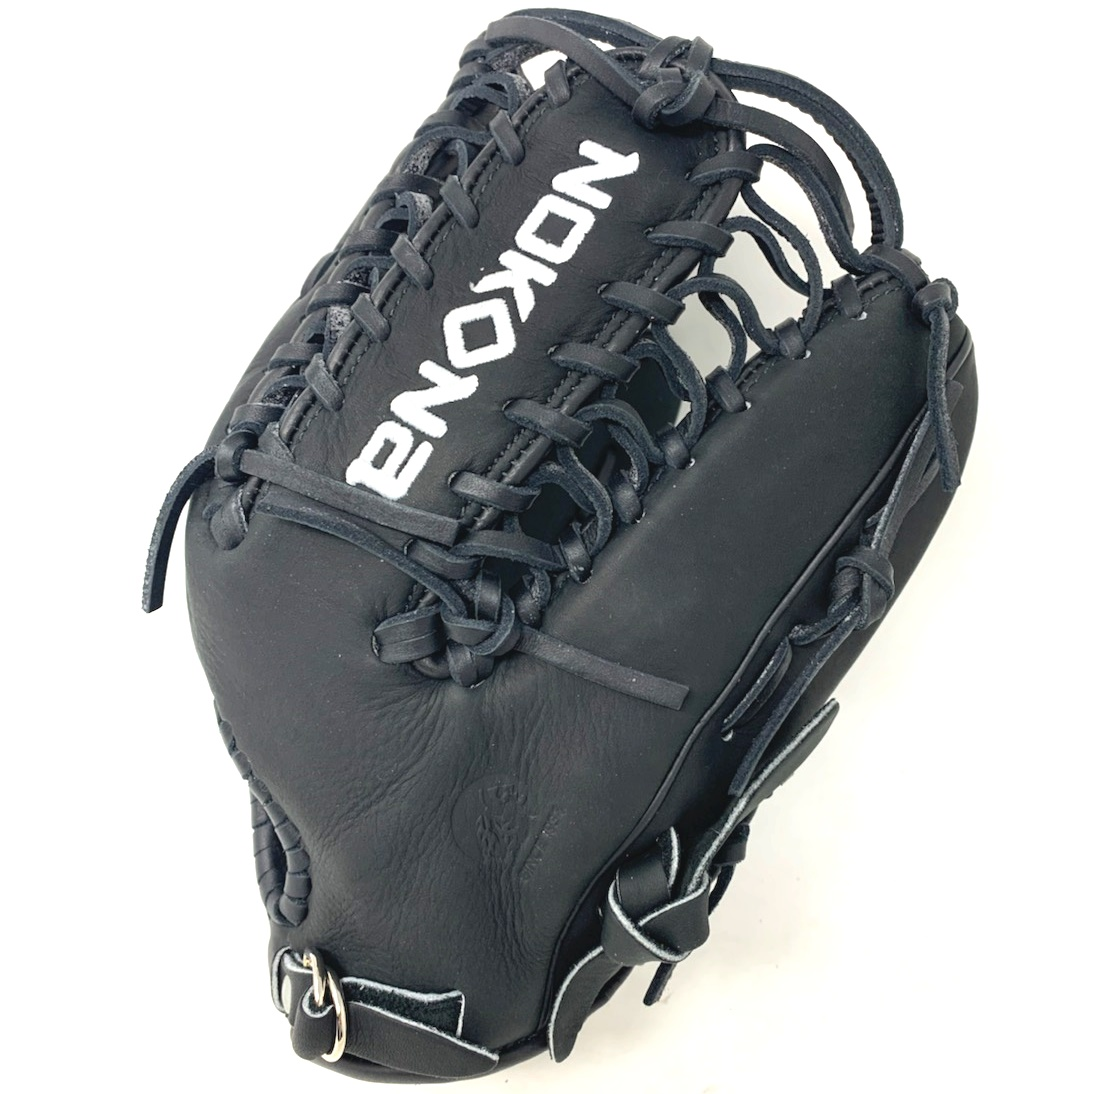 nokona-supersoft-full-trap-web-12-5-inch-xft-7-ox-baseball-glove-right-hand-throw XFT-7T-OX-RightHandThrow Nokona 808808892861 <p>12.5 Inch Model Full Trap Web Premium Top-Grain Steerhide Leather Requires